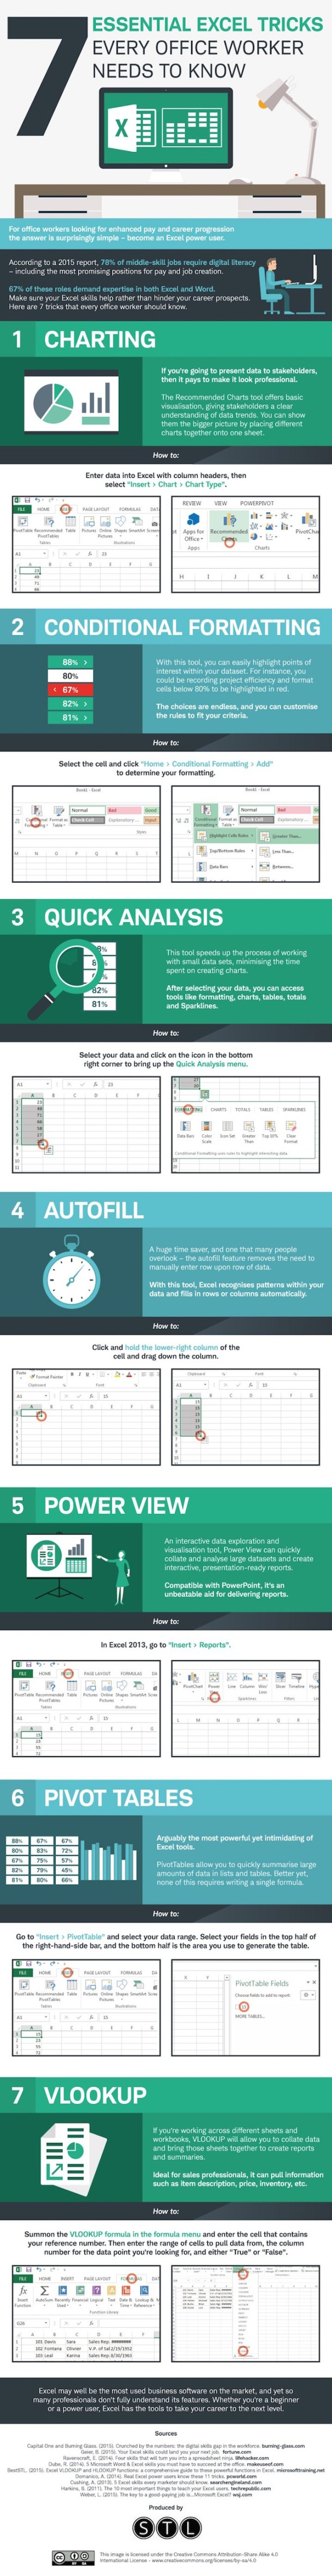 9.30.15 Excel Infographic